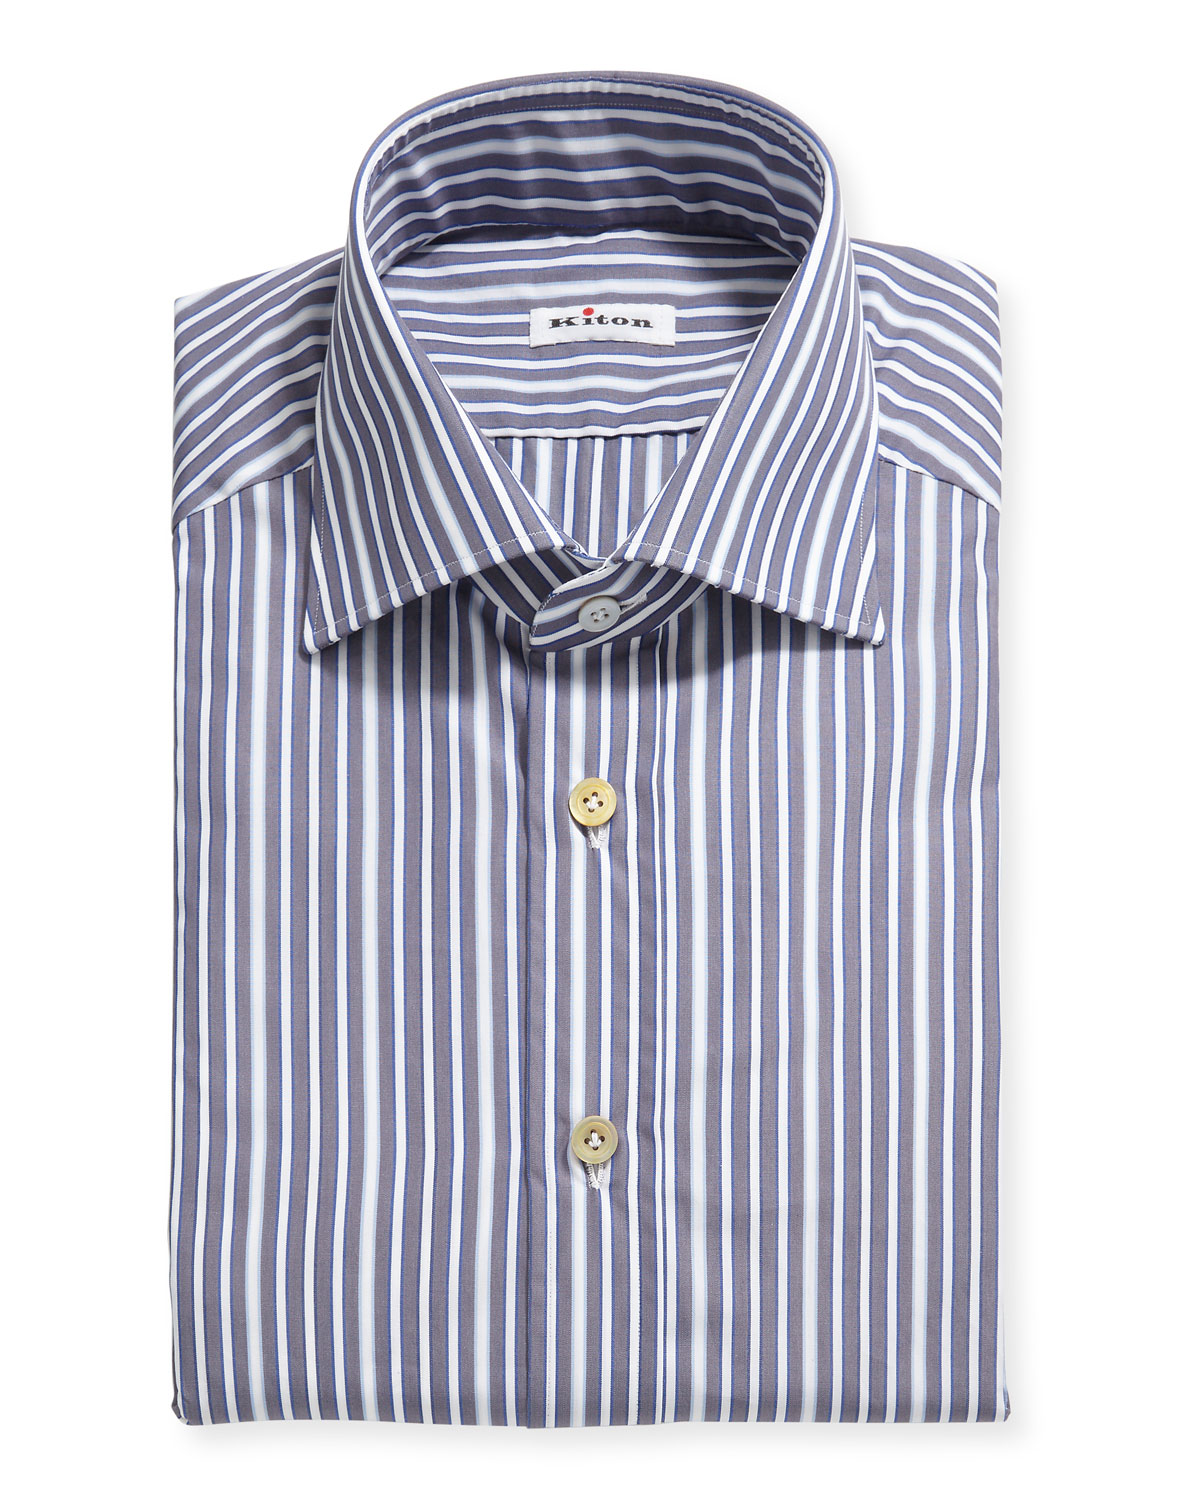 Kiton Men's Multi-Stripe Cotton Dress Shirt